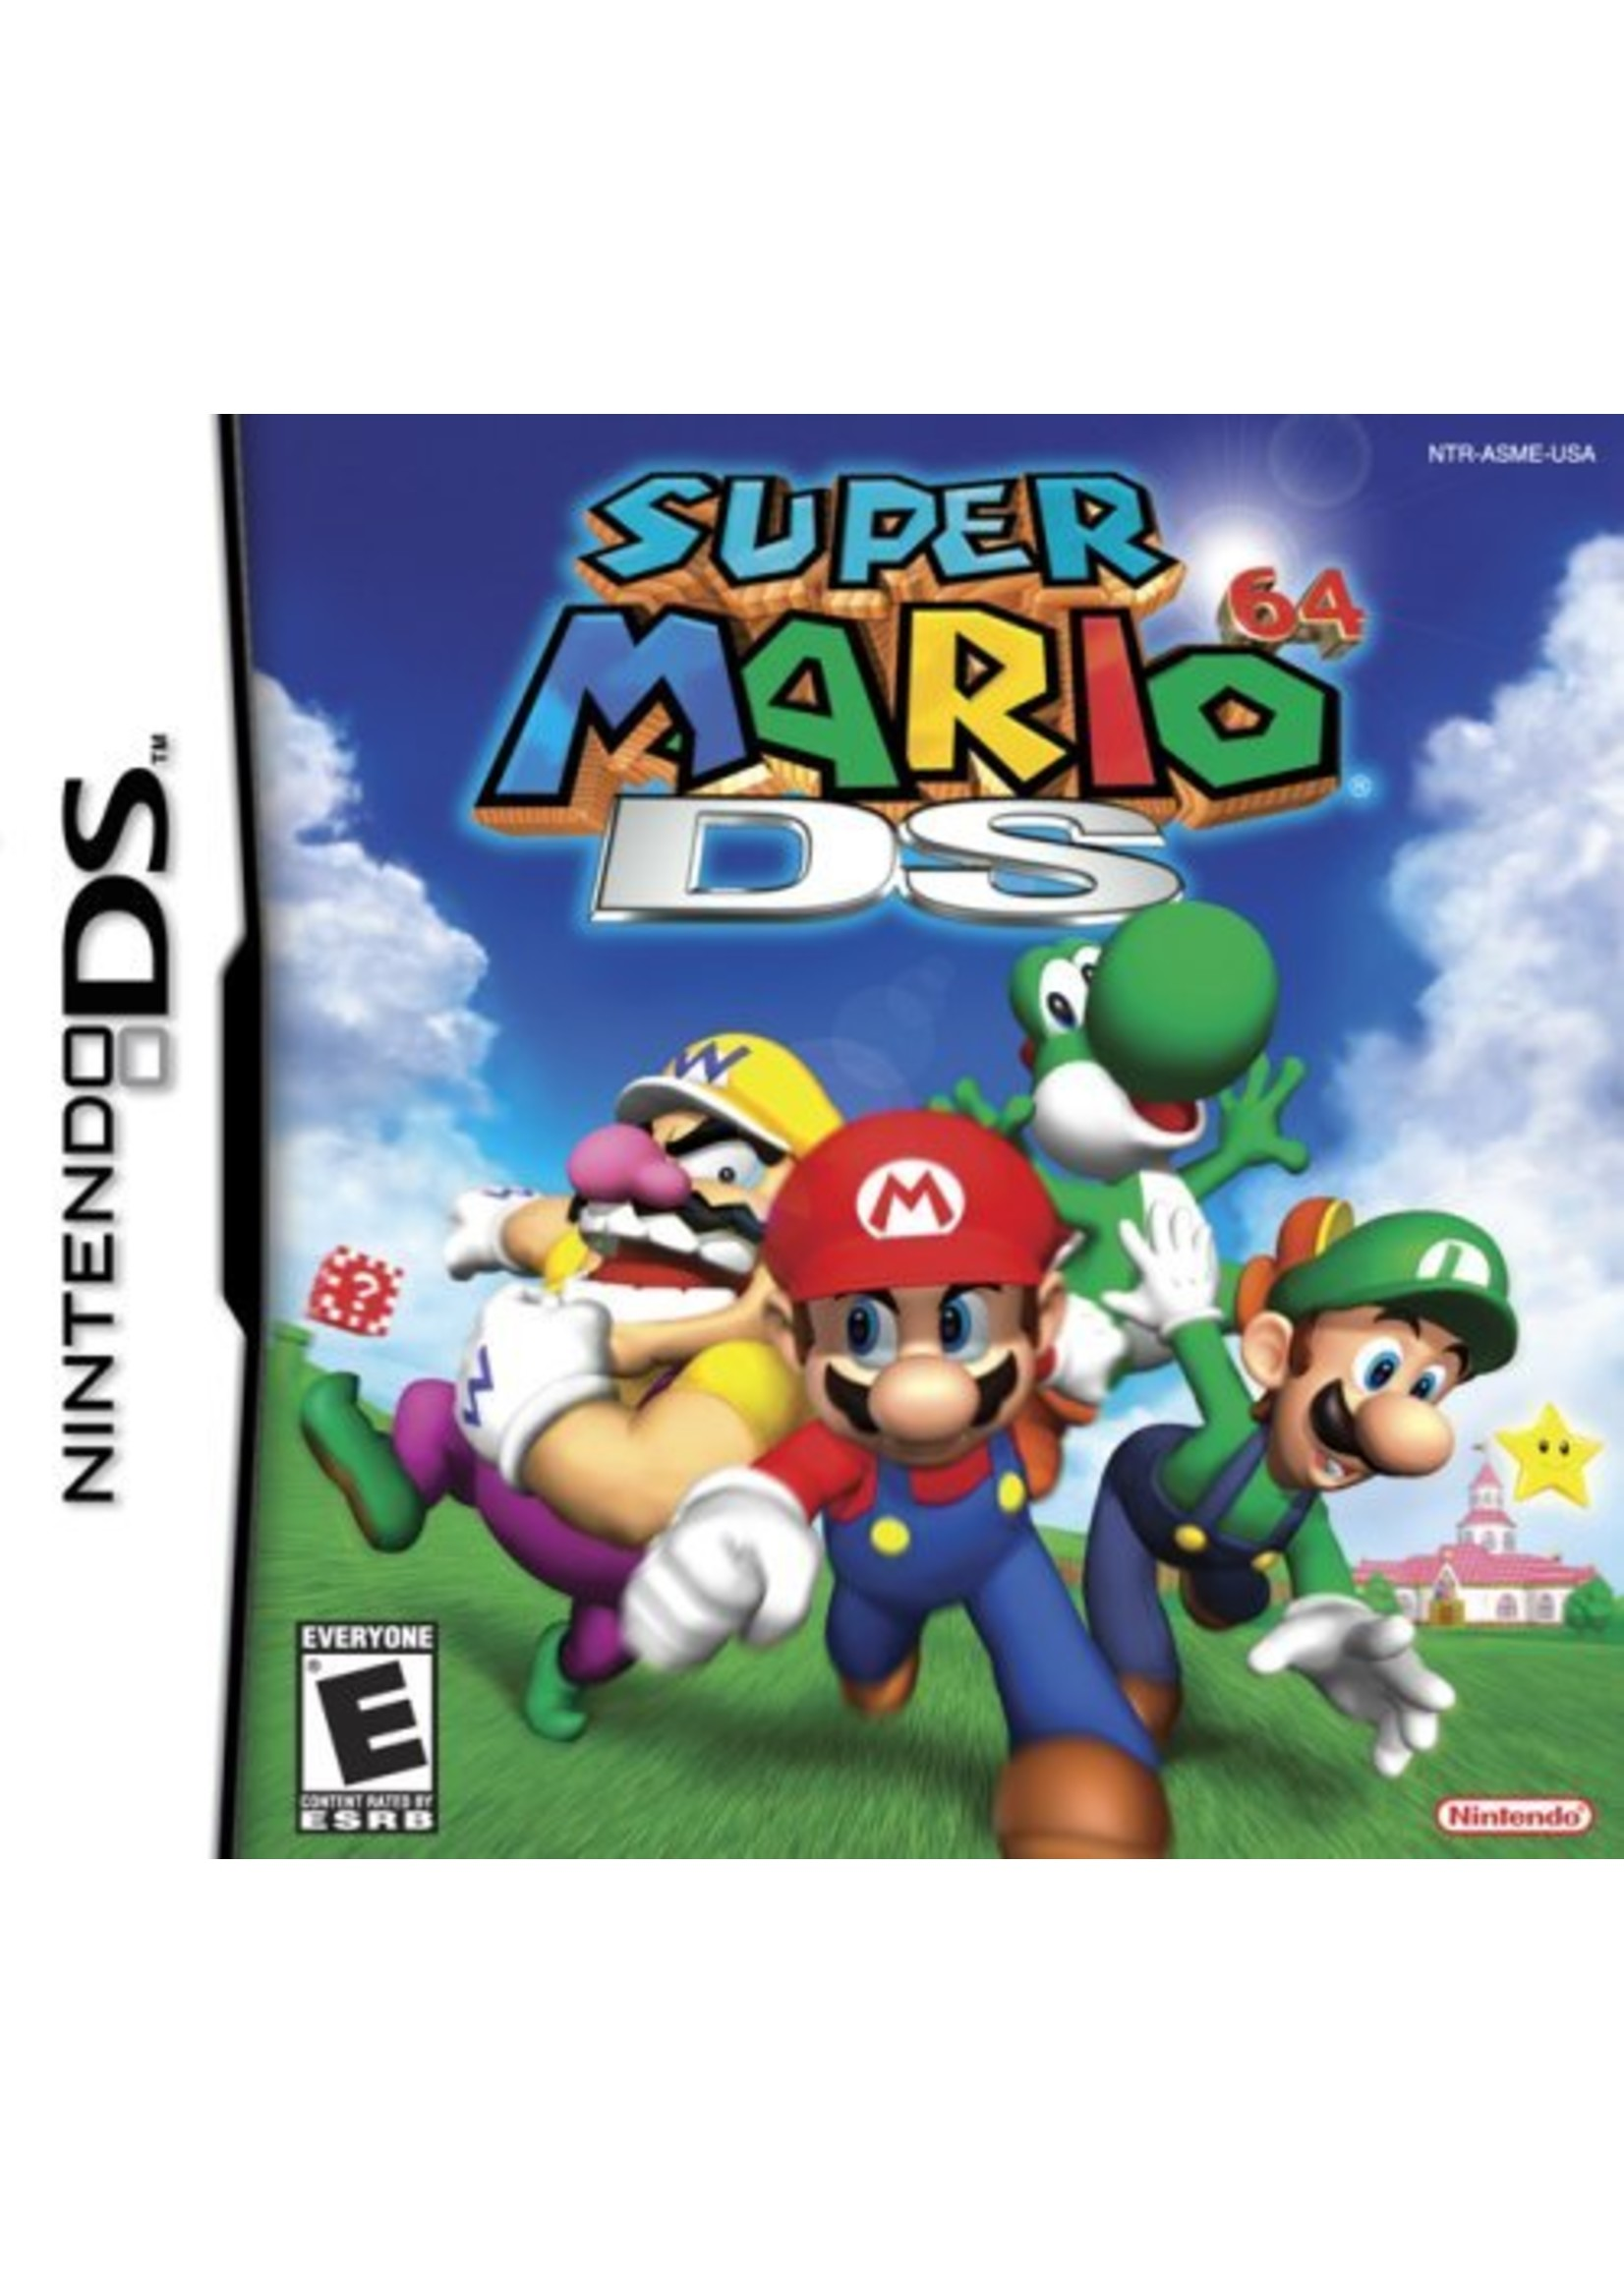 Super Mario 64 DS - NDS PrePlayed